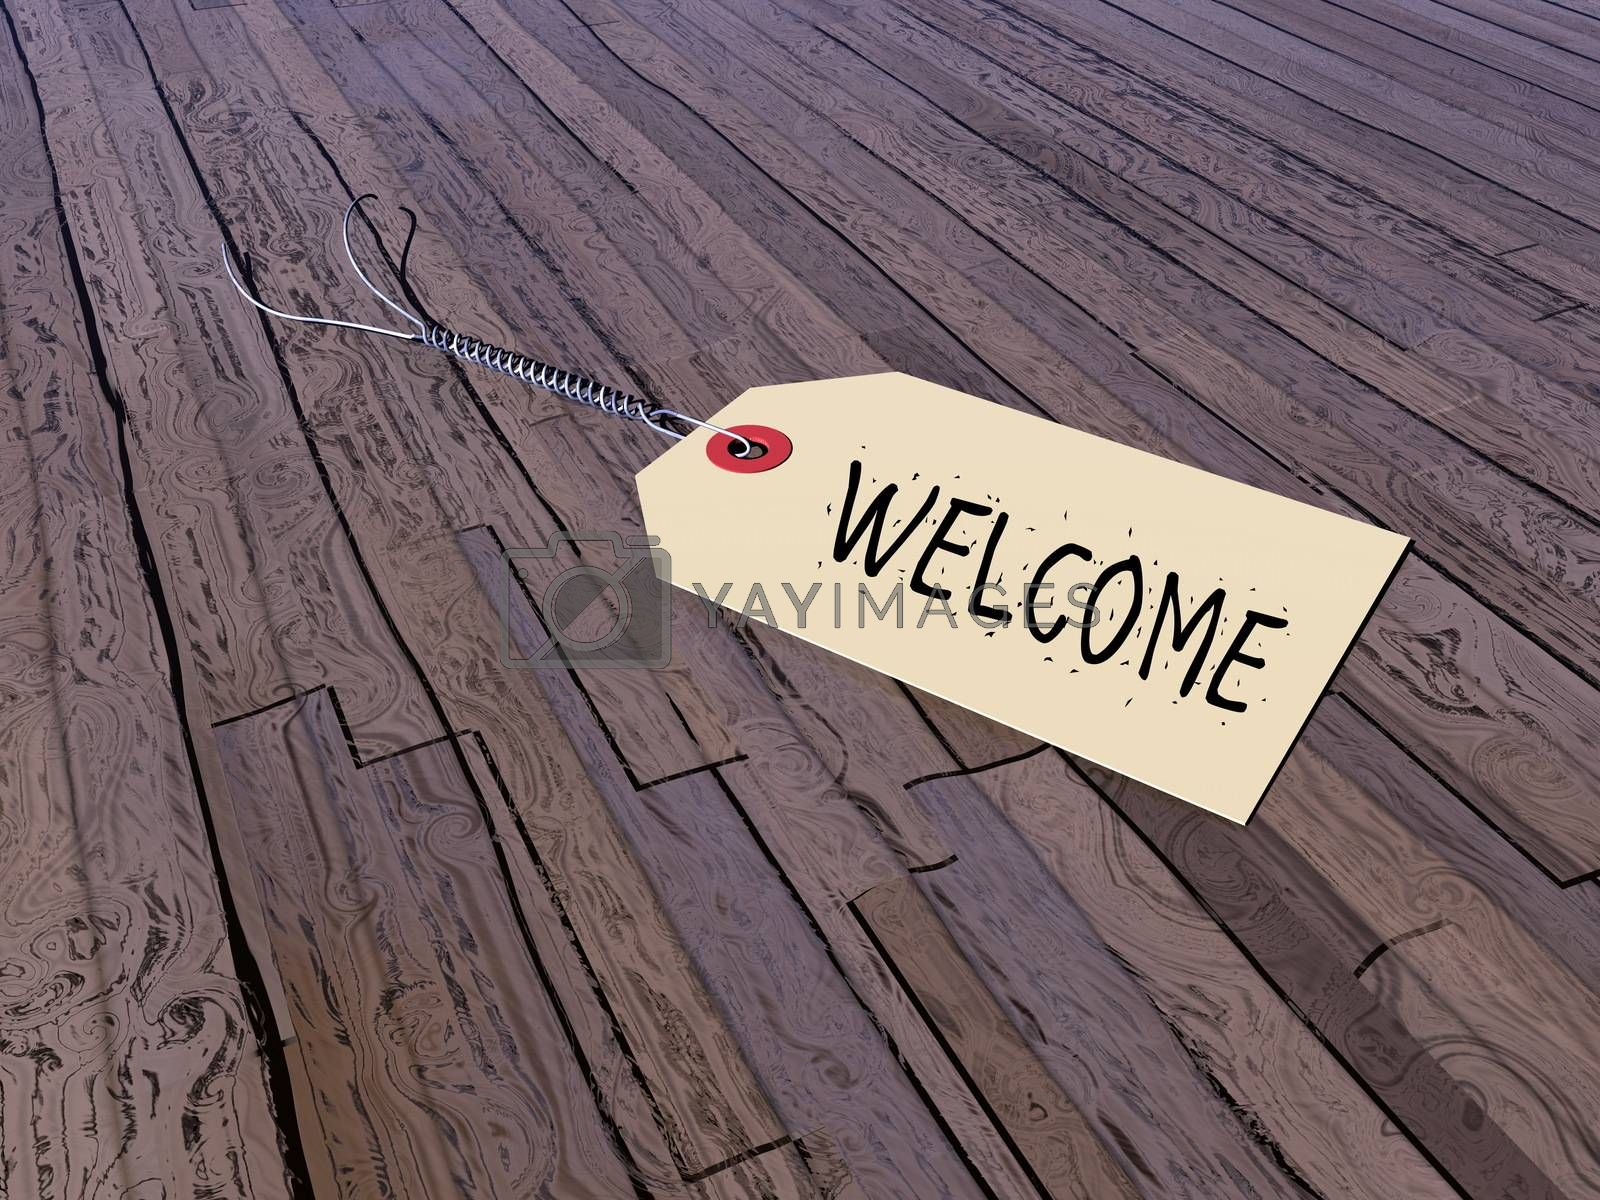 Tag or welcome on a vintage wooden floor - 3D render